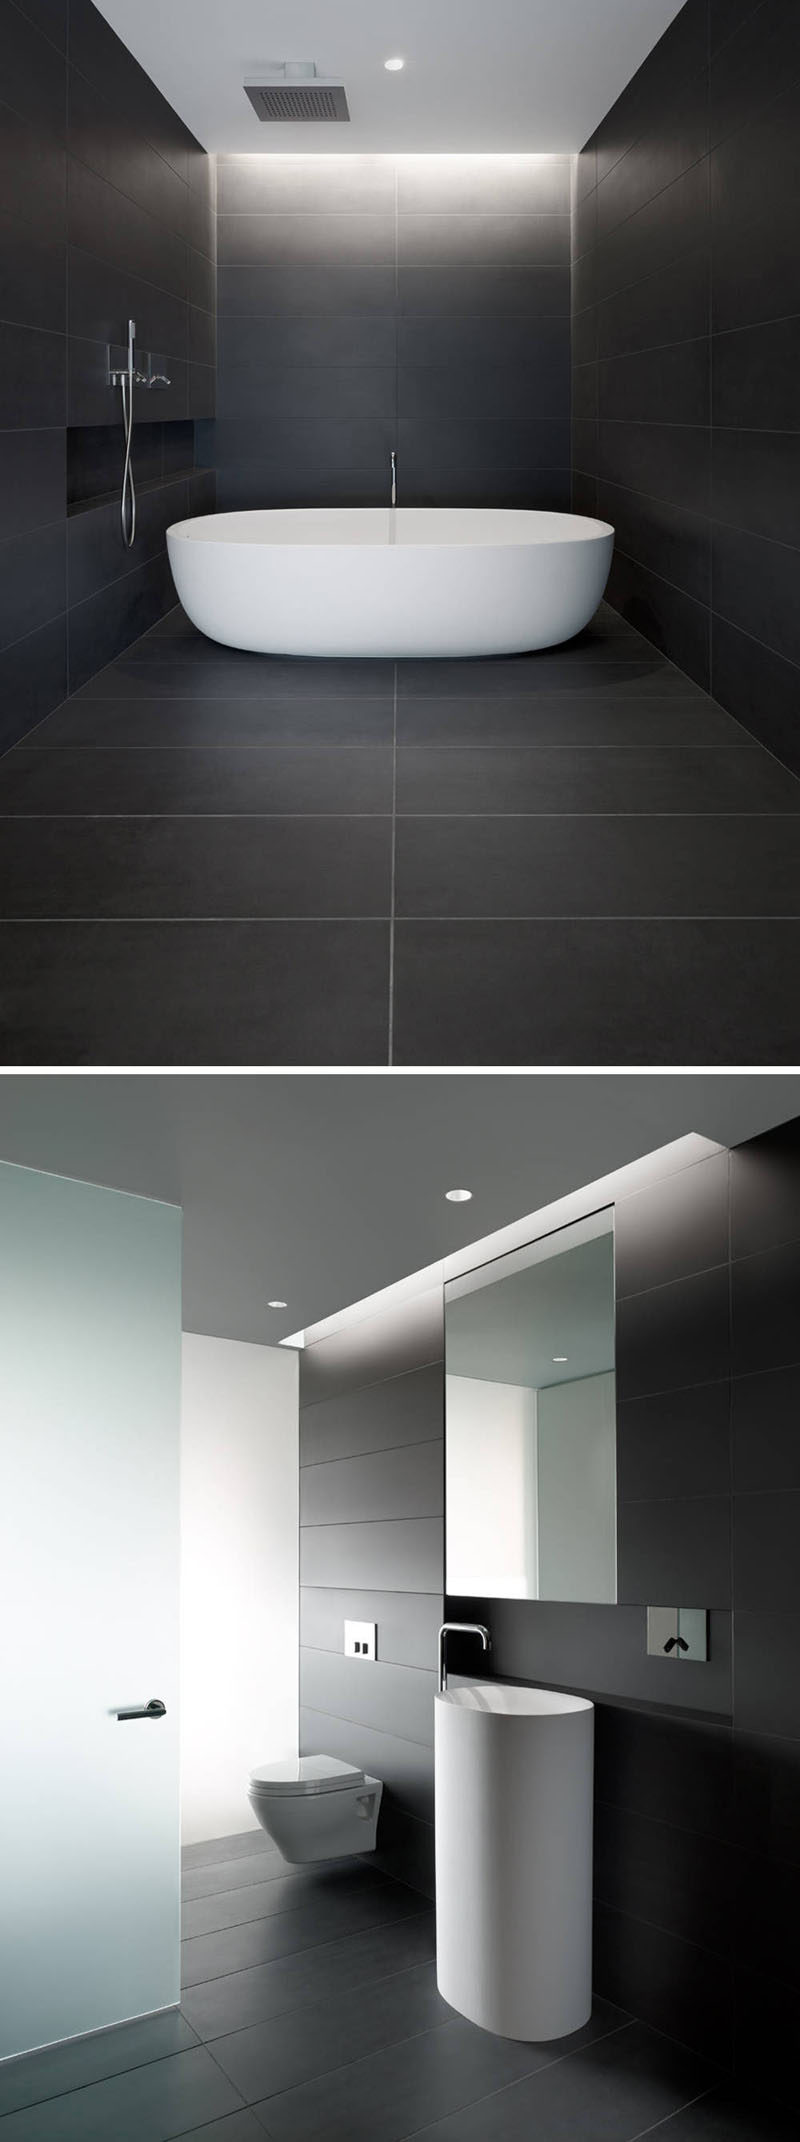 Large Dark Tiles Covering The Floor And Walls Of This Bathroom Create Beautiful Lines That Meet Up Seamlessly To A Calm Relaxing E